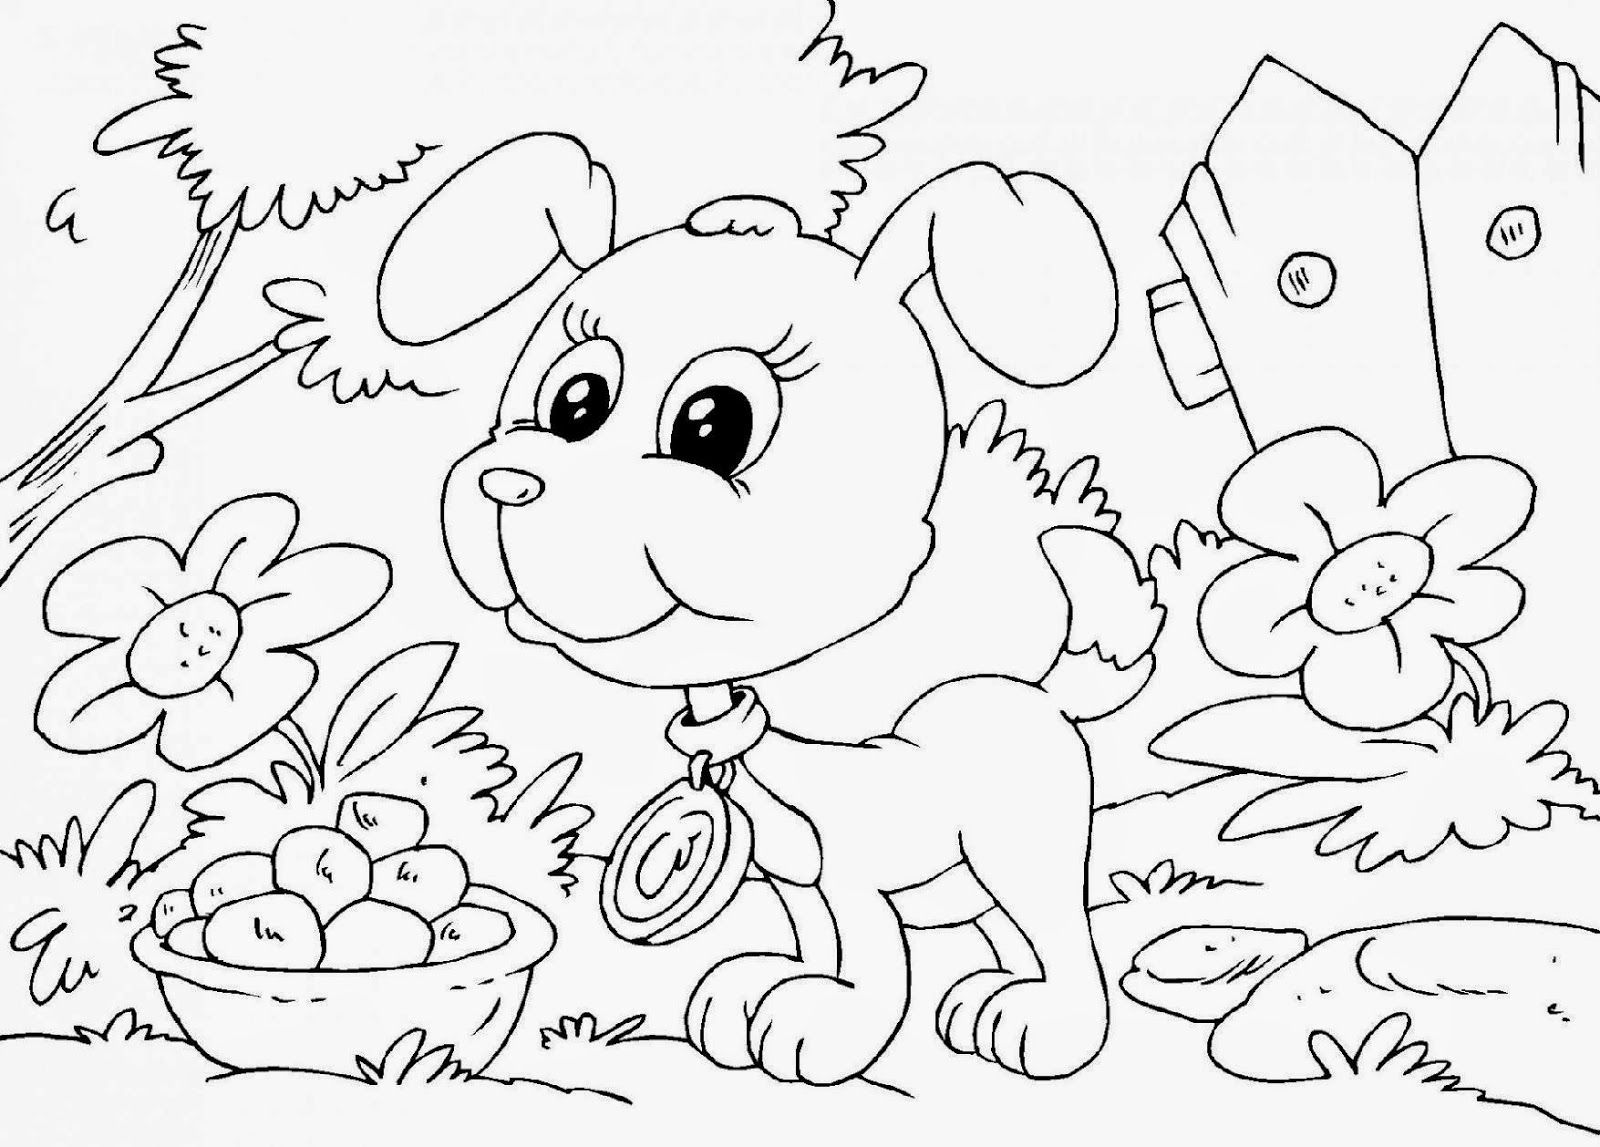 coloring sheet breast cancer awareness coloring pages coloring sheet breast cancer awareness coloring pages breast coloring sheet coloring cancer awareness pages